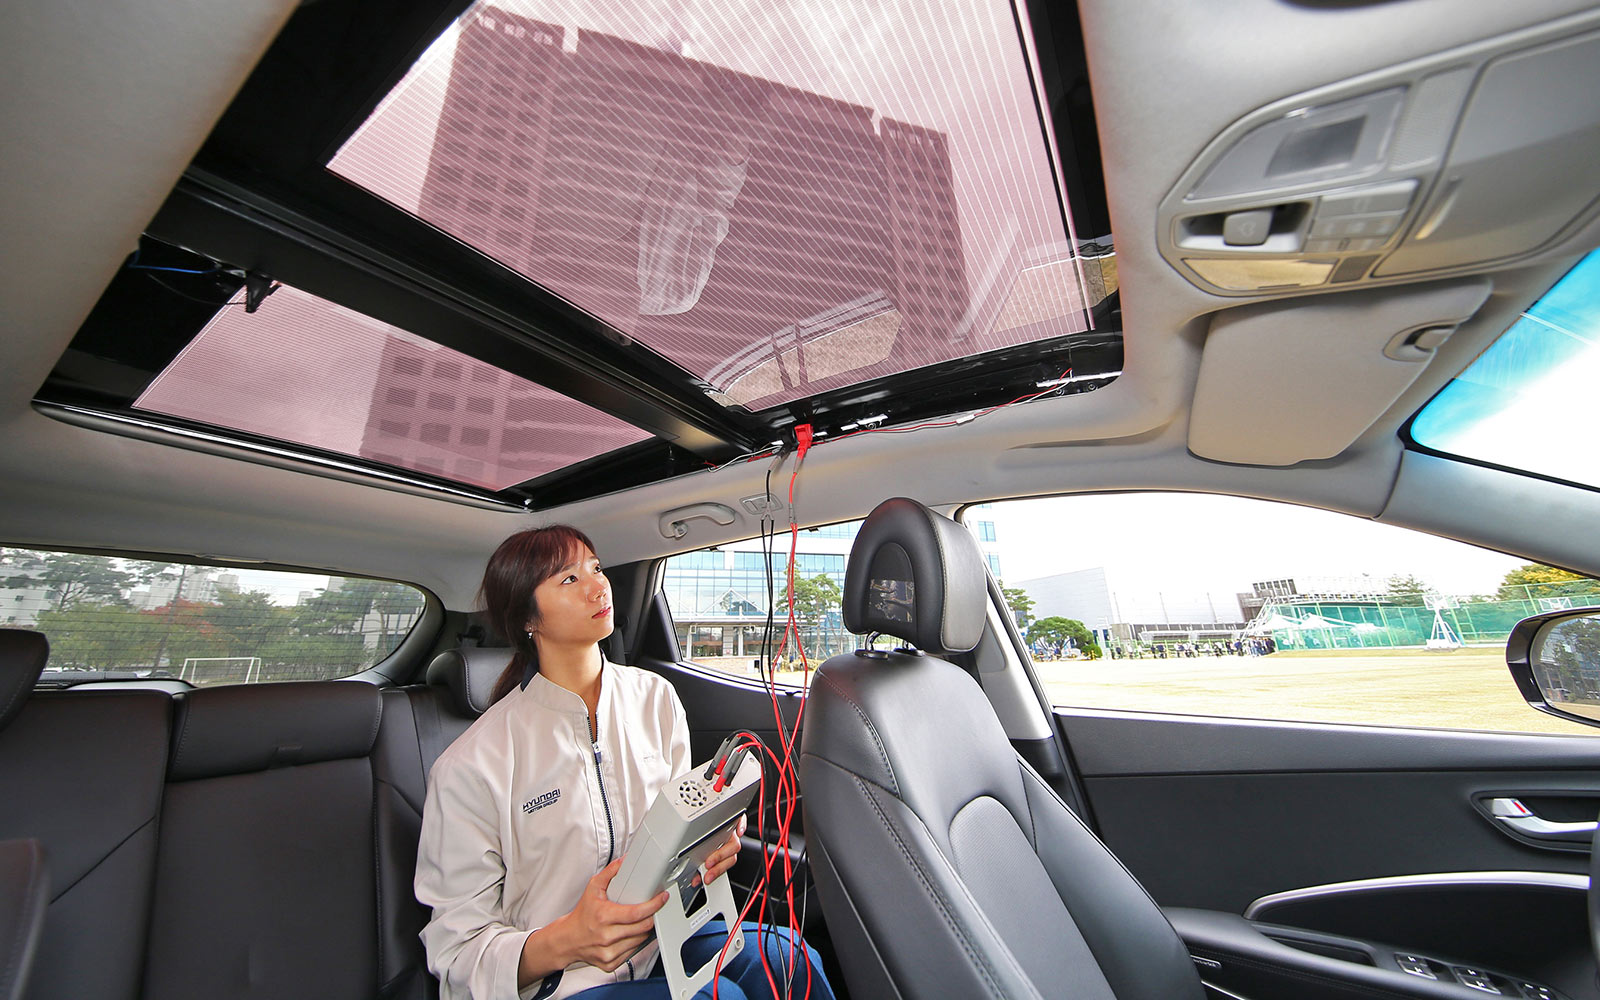 hyundai-reveals-solar-charging-technology-3-1610.jpg